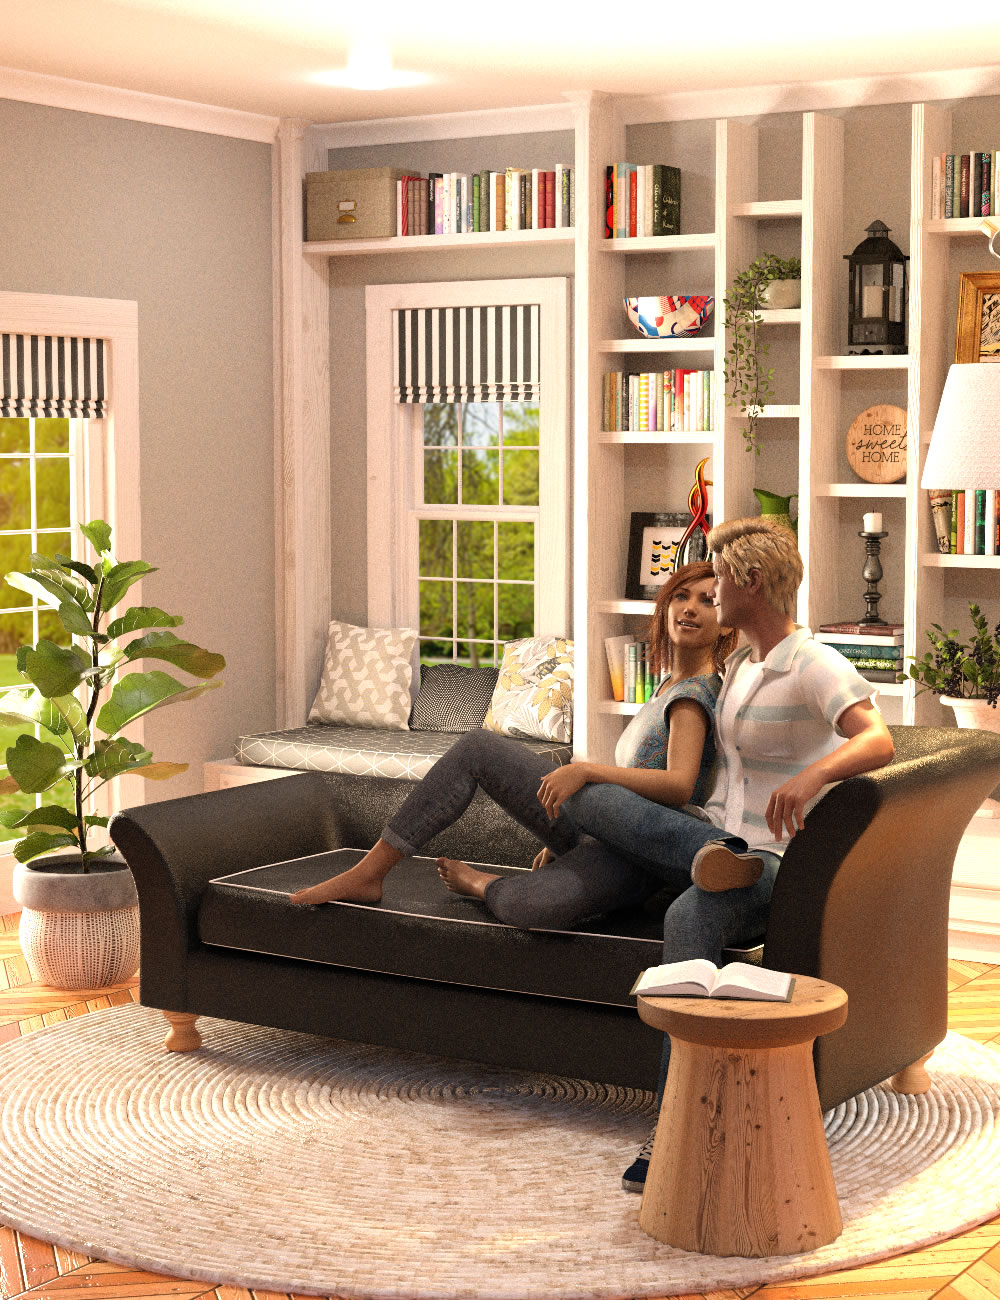 Calm Corner with Poses for Genesis 8 by: SilvaAnt3d, 3D Models by Daz 3D